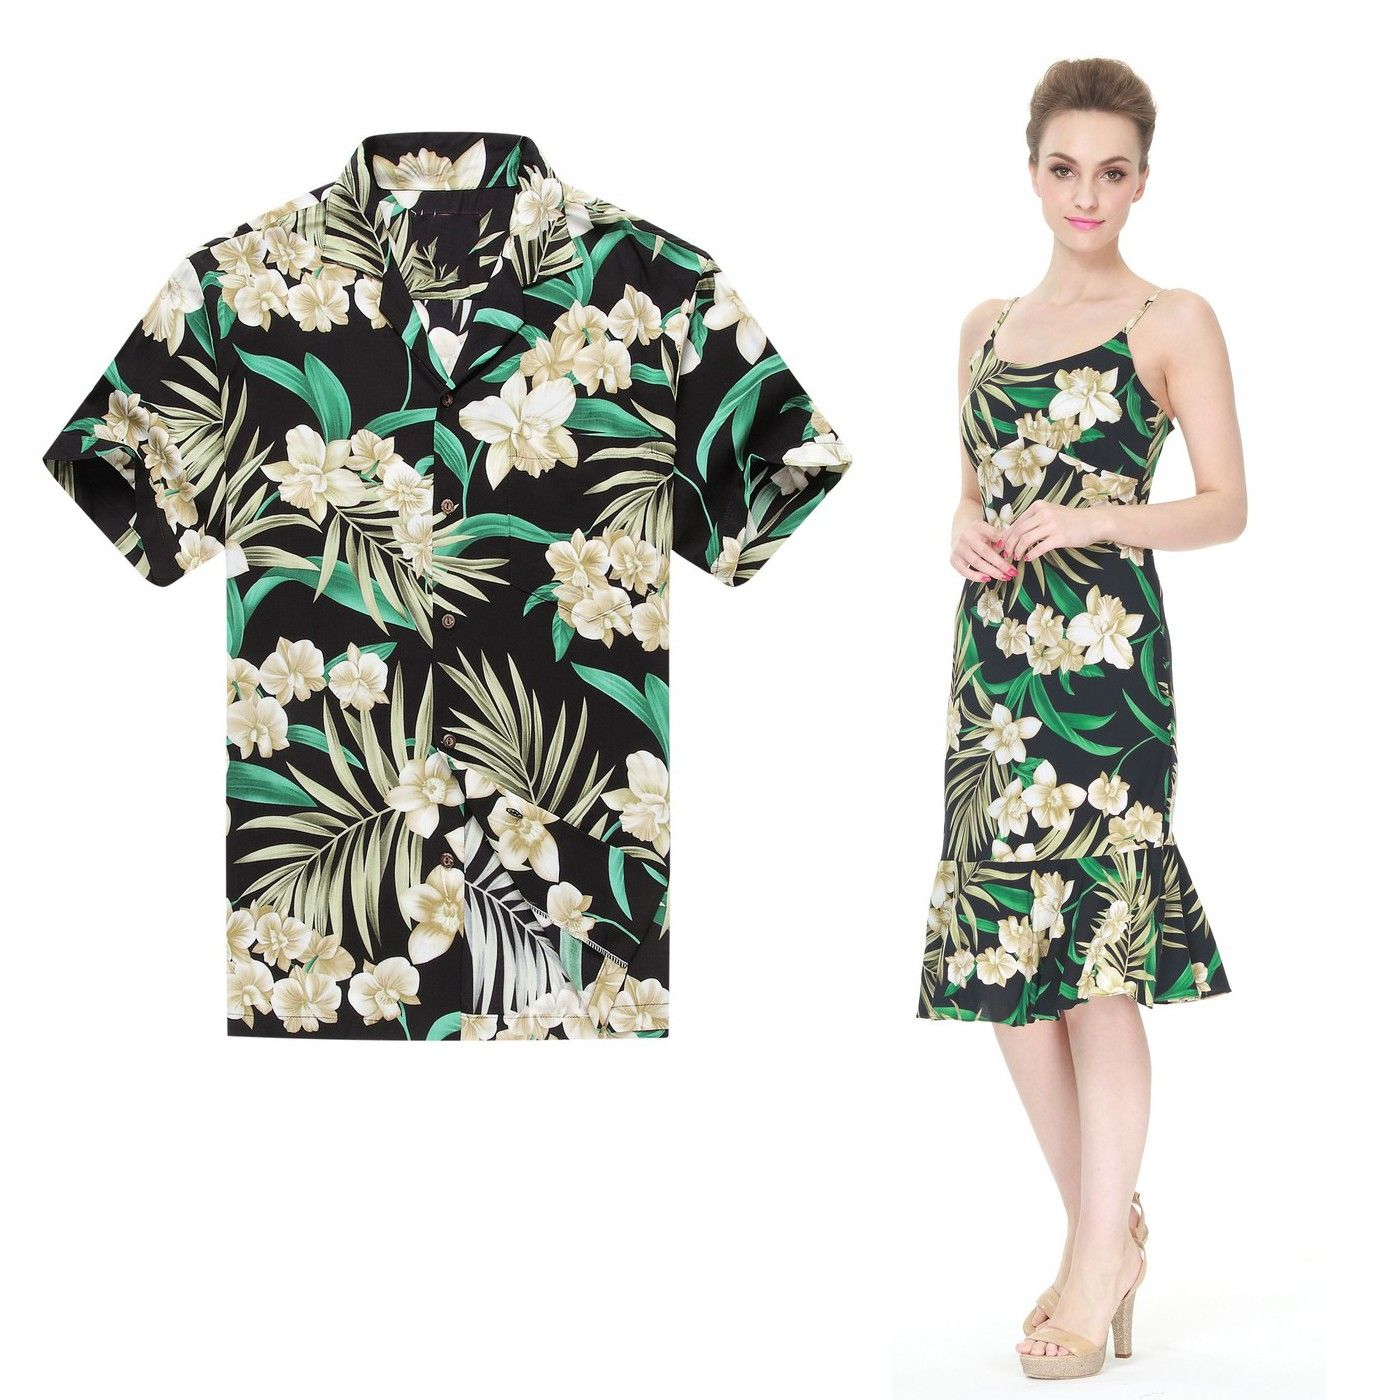 ff8c4503a8f Premium COUPLE MATCHING MADE IN HAWAII MEN SHIRT AND WOMEN Elegant Ruffle  Dress in Black Green Floral